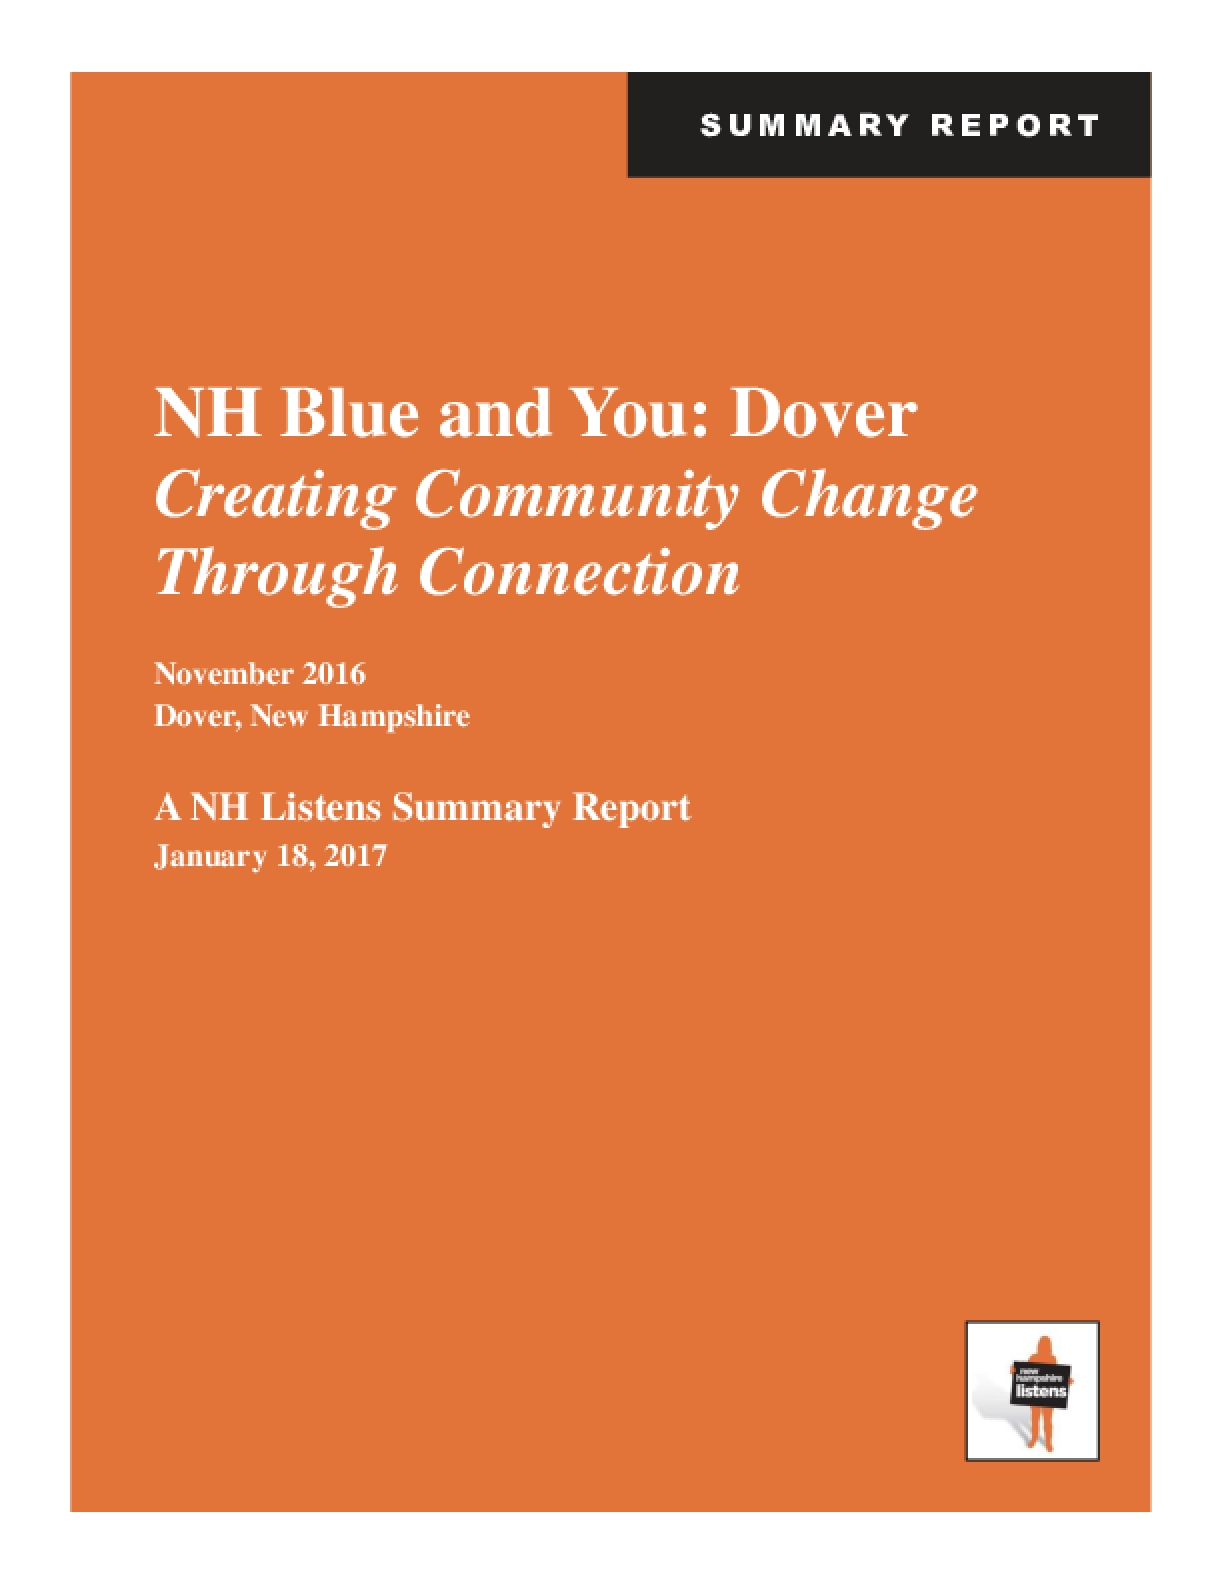 NH Blue and You: Dover Creating Community Change Through Connection A NH Listens Summary Report